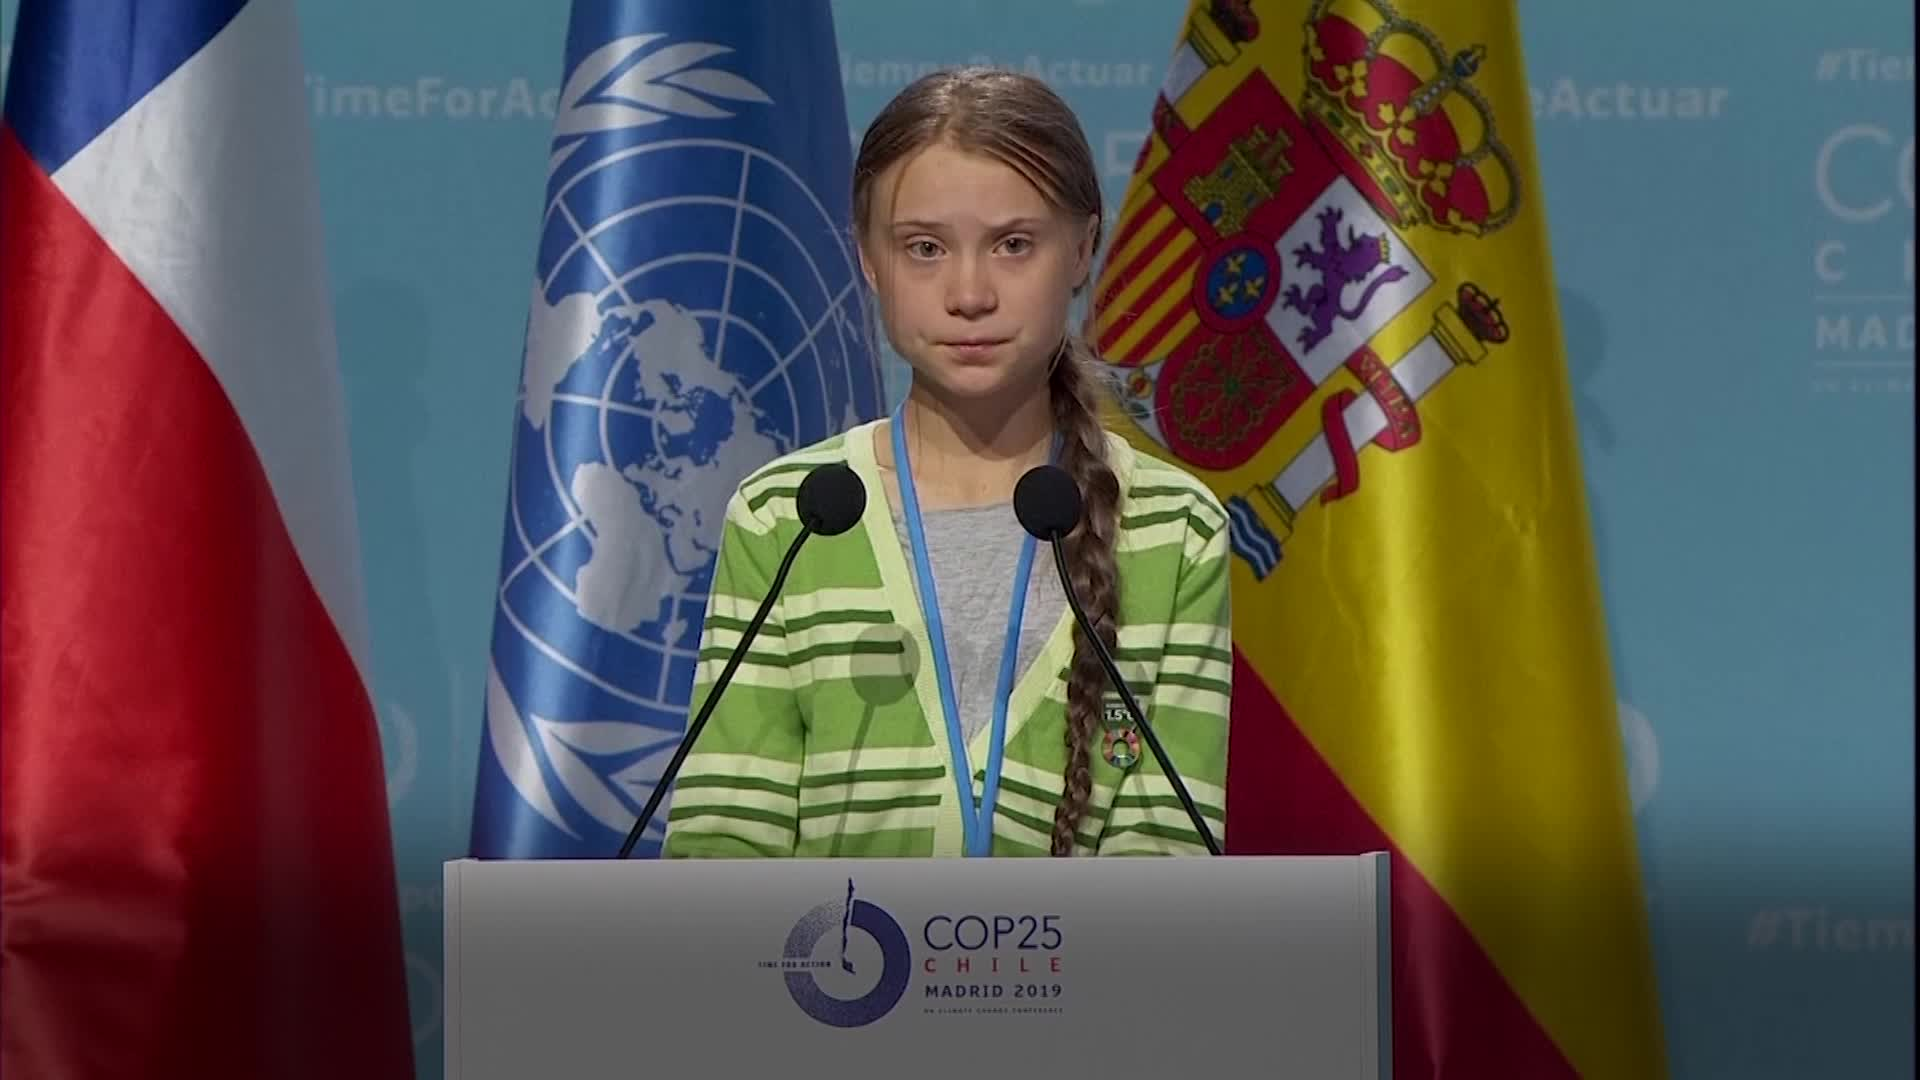 At UN Climate Summit, Greta Thunberg Lifts Up Science, Blasts World Leaders